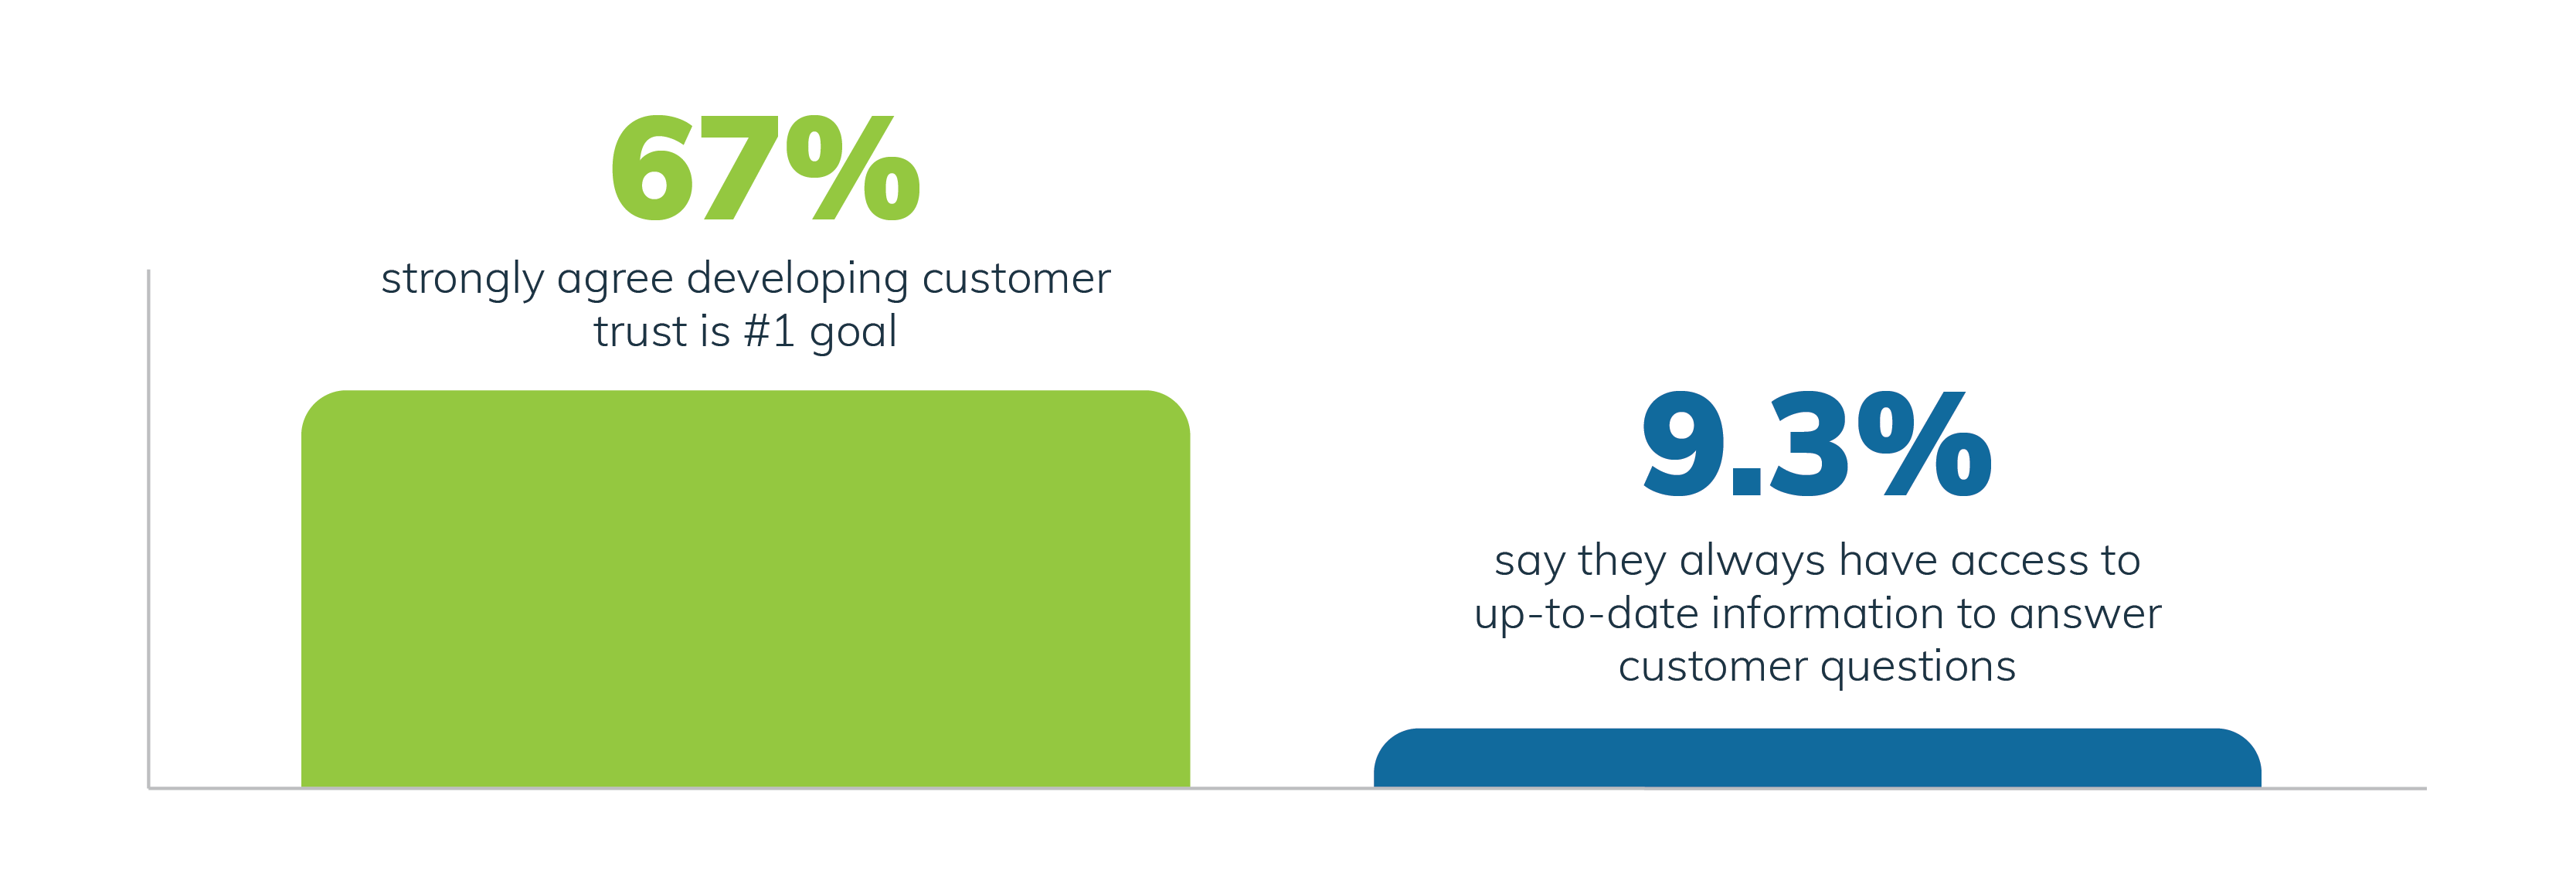 Most pre-sales professionals strongly agree developing customer trust is their top priority.